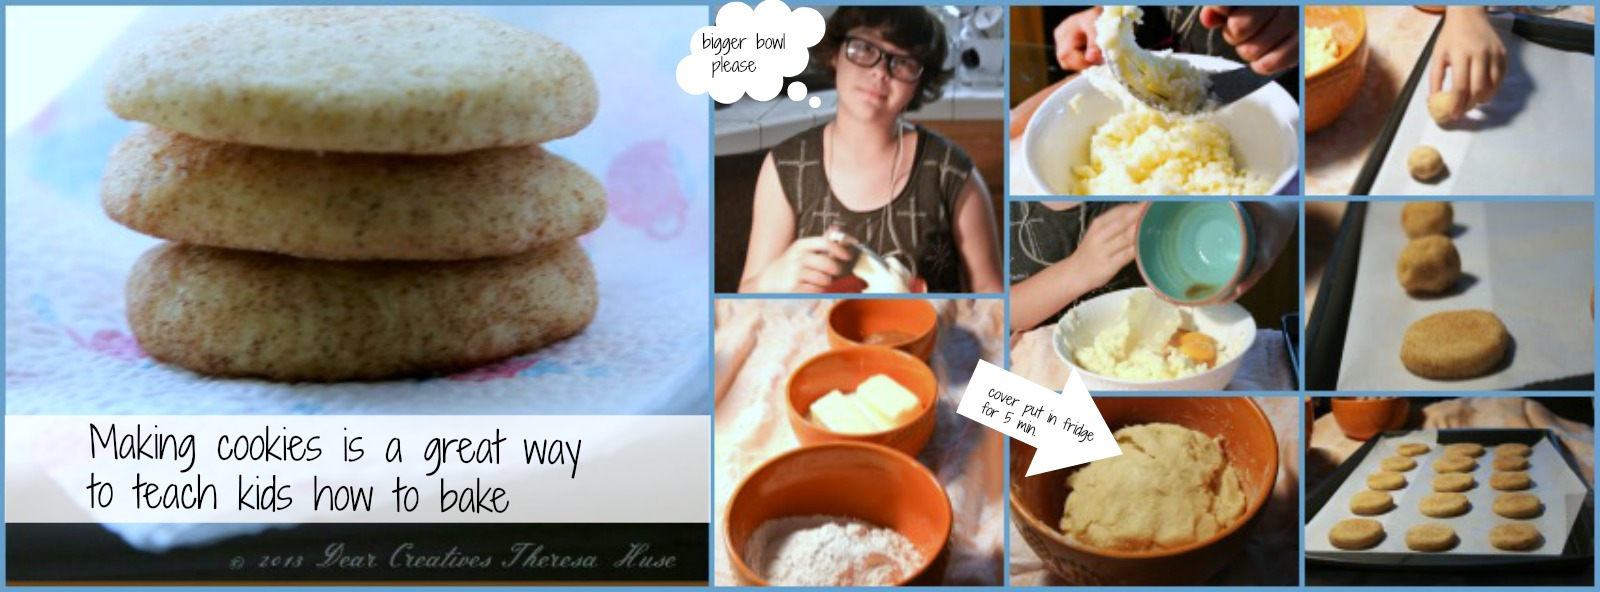 Making snicker-doodles step by step , baking with kids © 2013 Theresa Huse